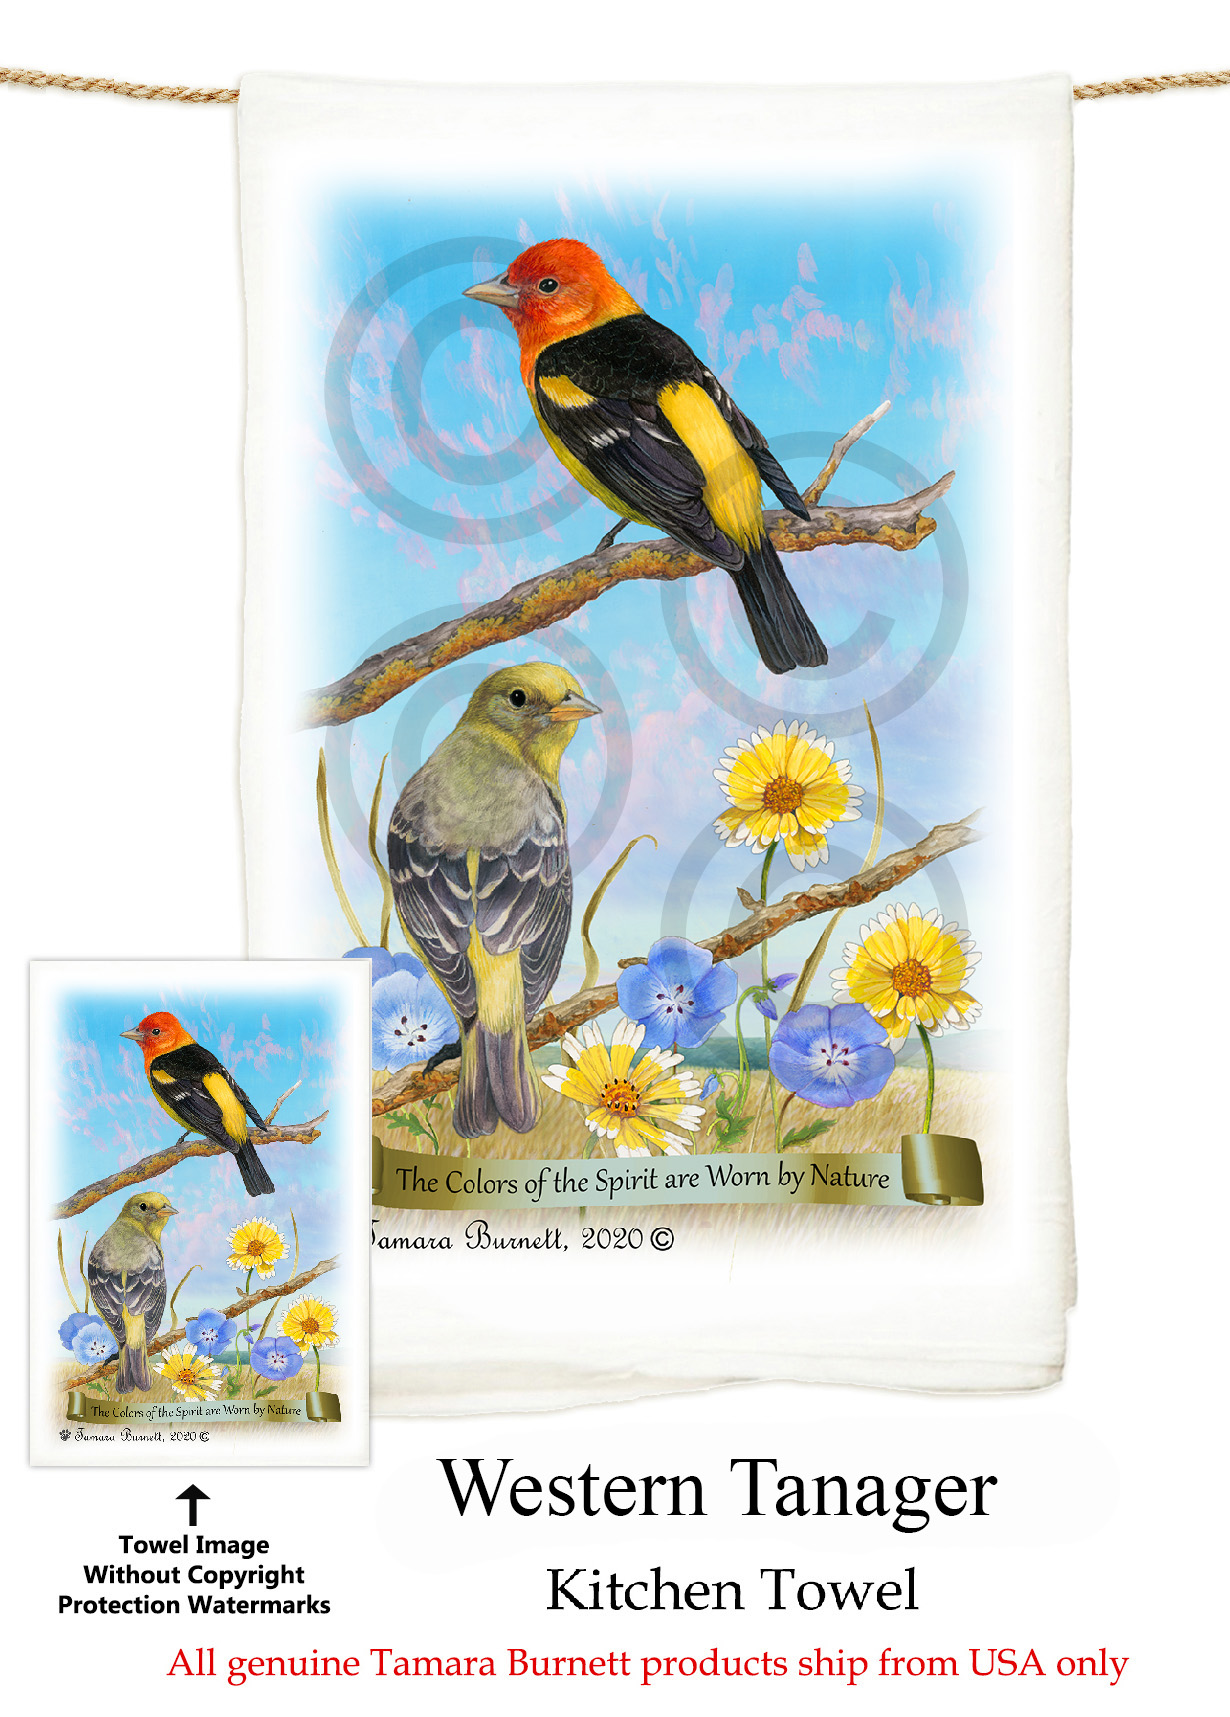 Western Tanager - Flour Sack Towel image sized 1230 x 1717